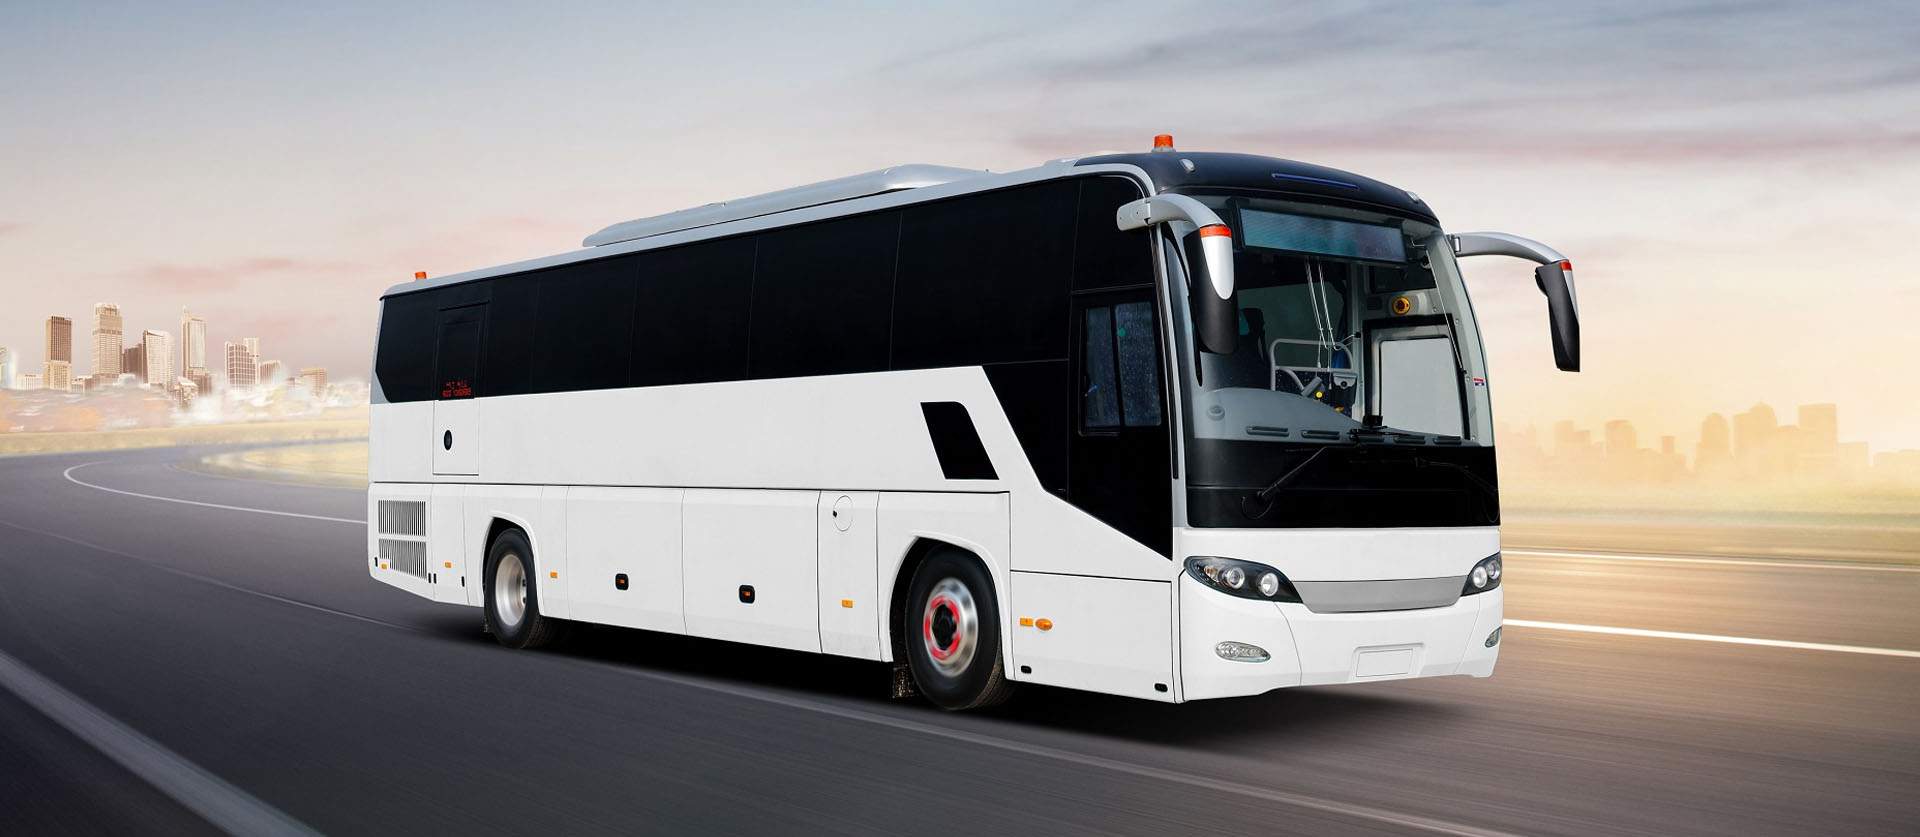 56 Passenger Coach Bus Rental Minneapolis, MN